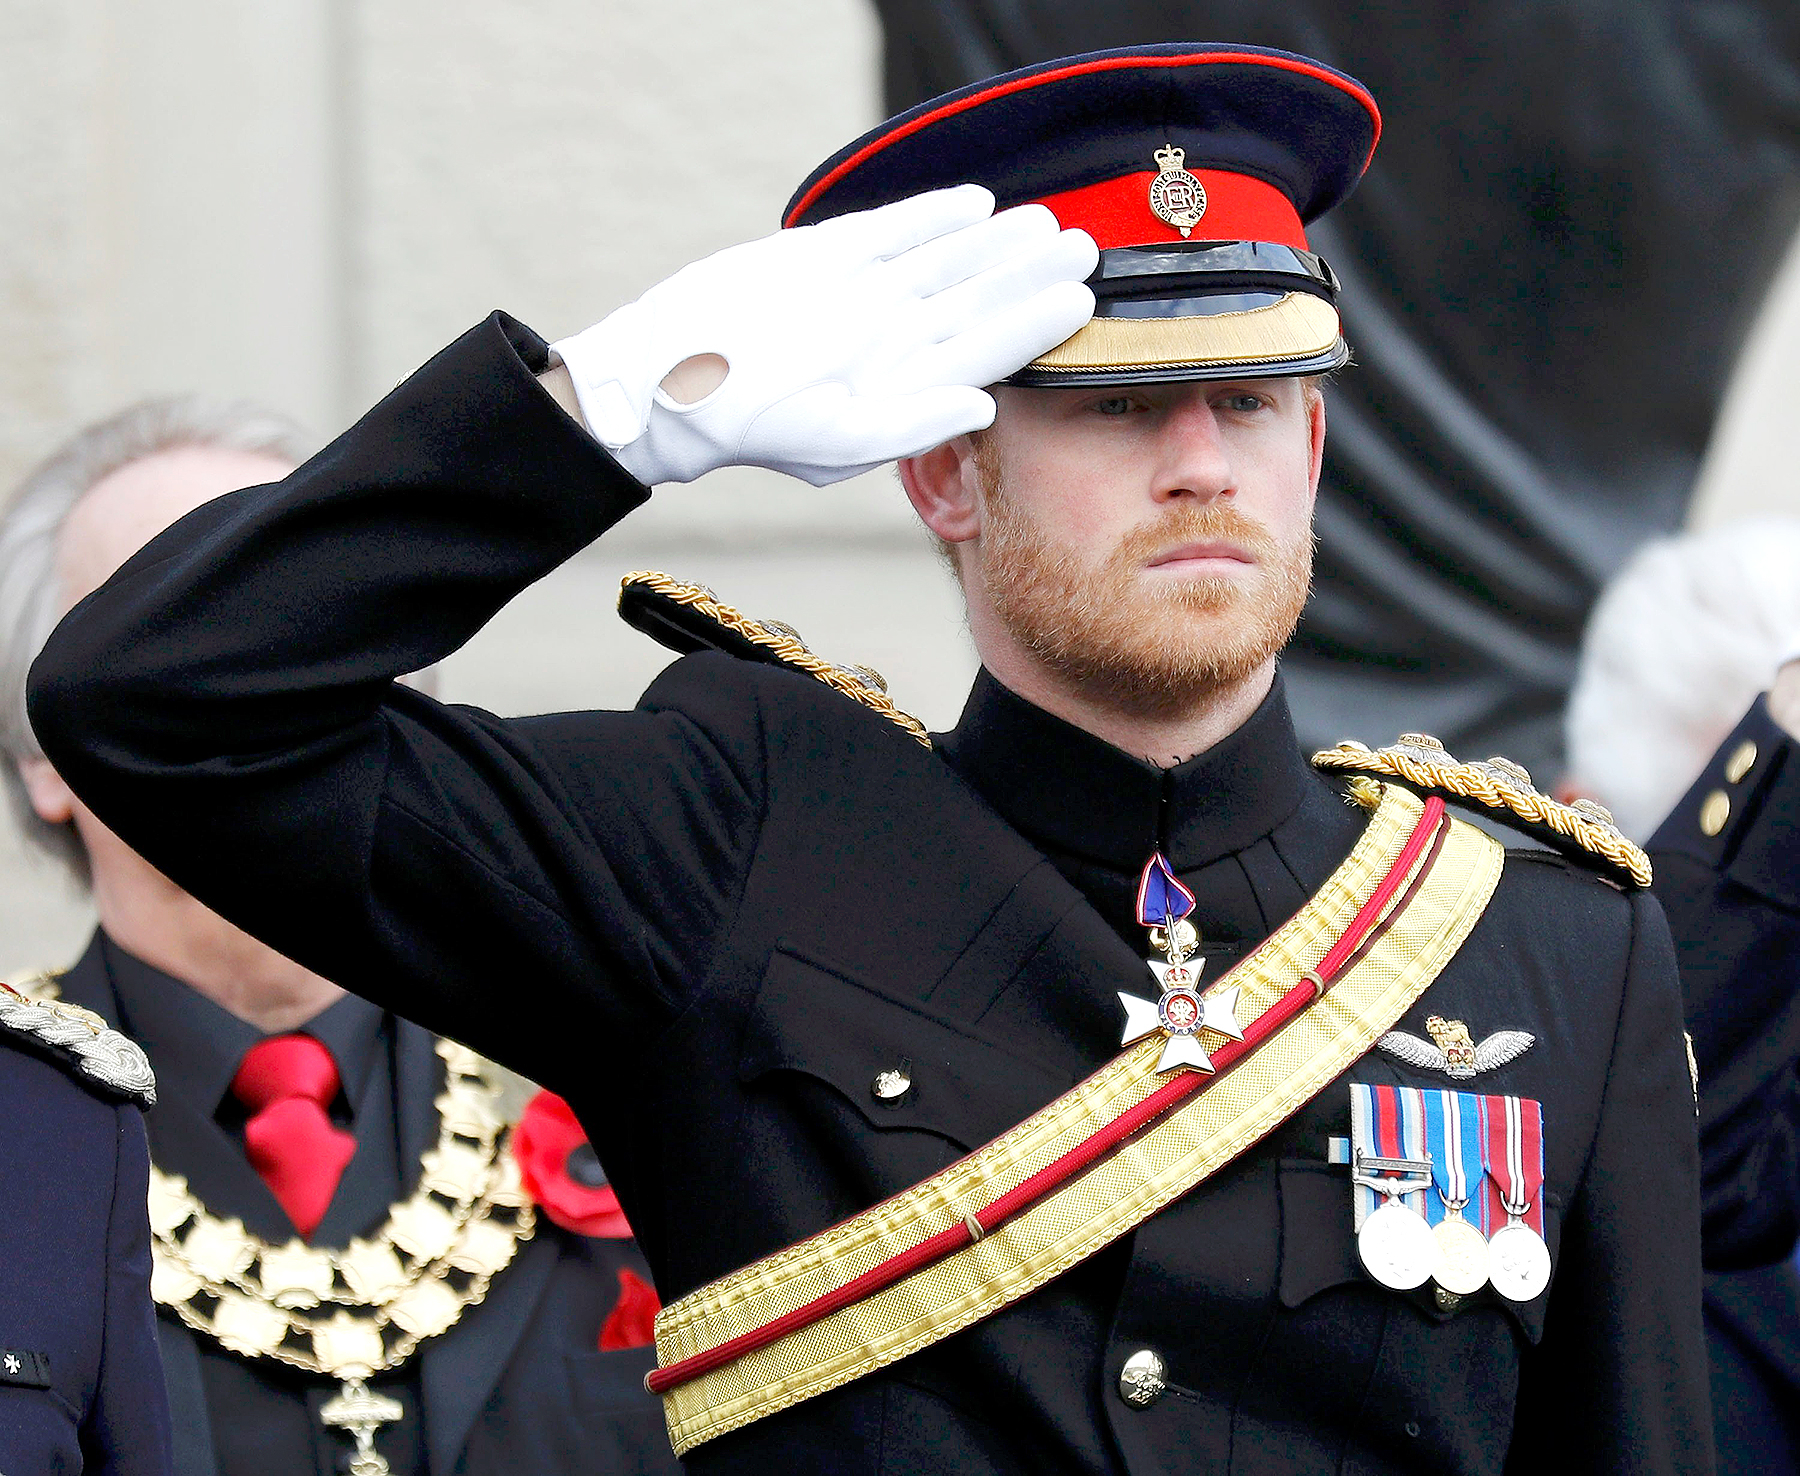 Prince Harry attends Armistice Day commemorations at the National Memorial Arboretum on November 11, 2016 in Stafford, United Kingdom.